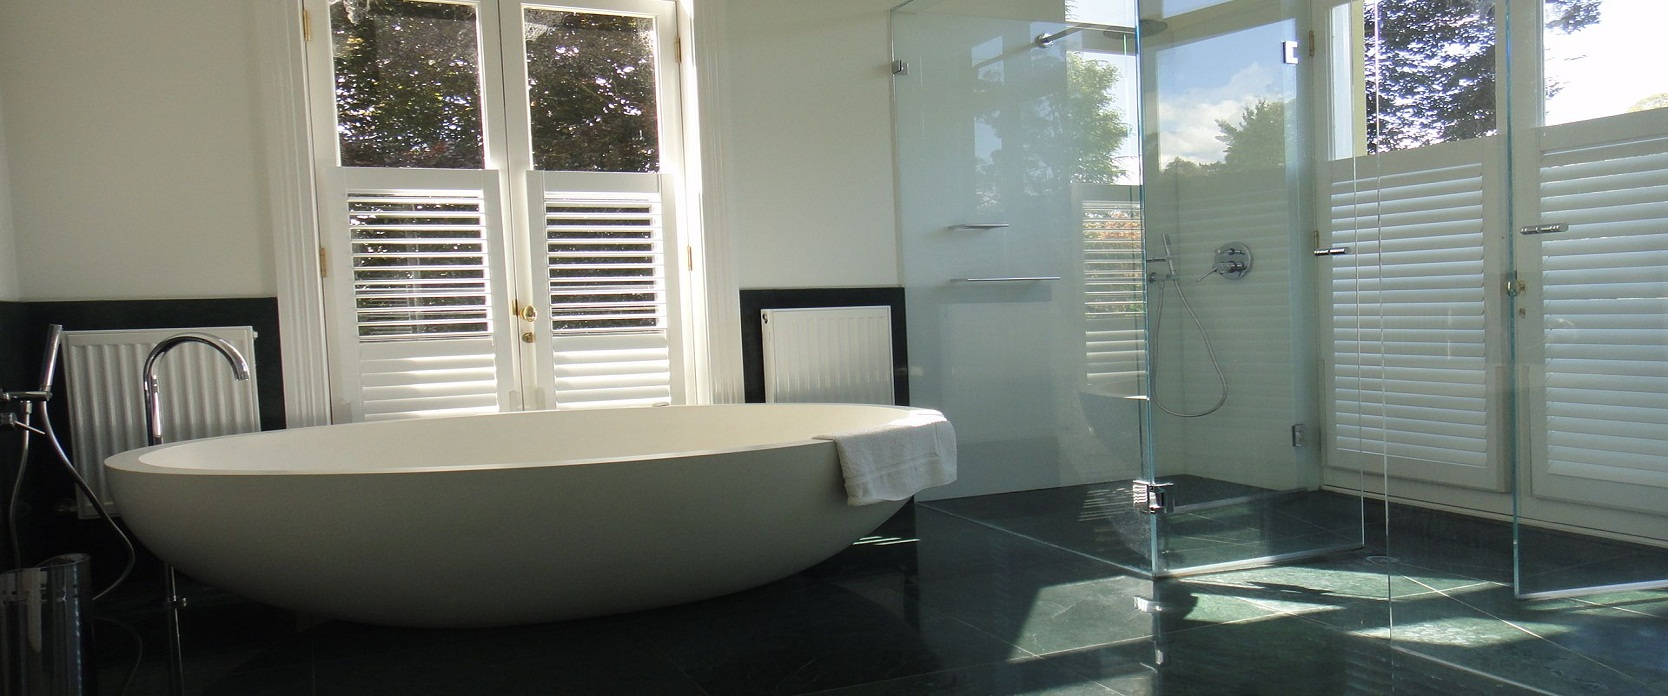 Bathroom waterproofing work conducted by Flex A Seal in Melbourne.